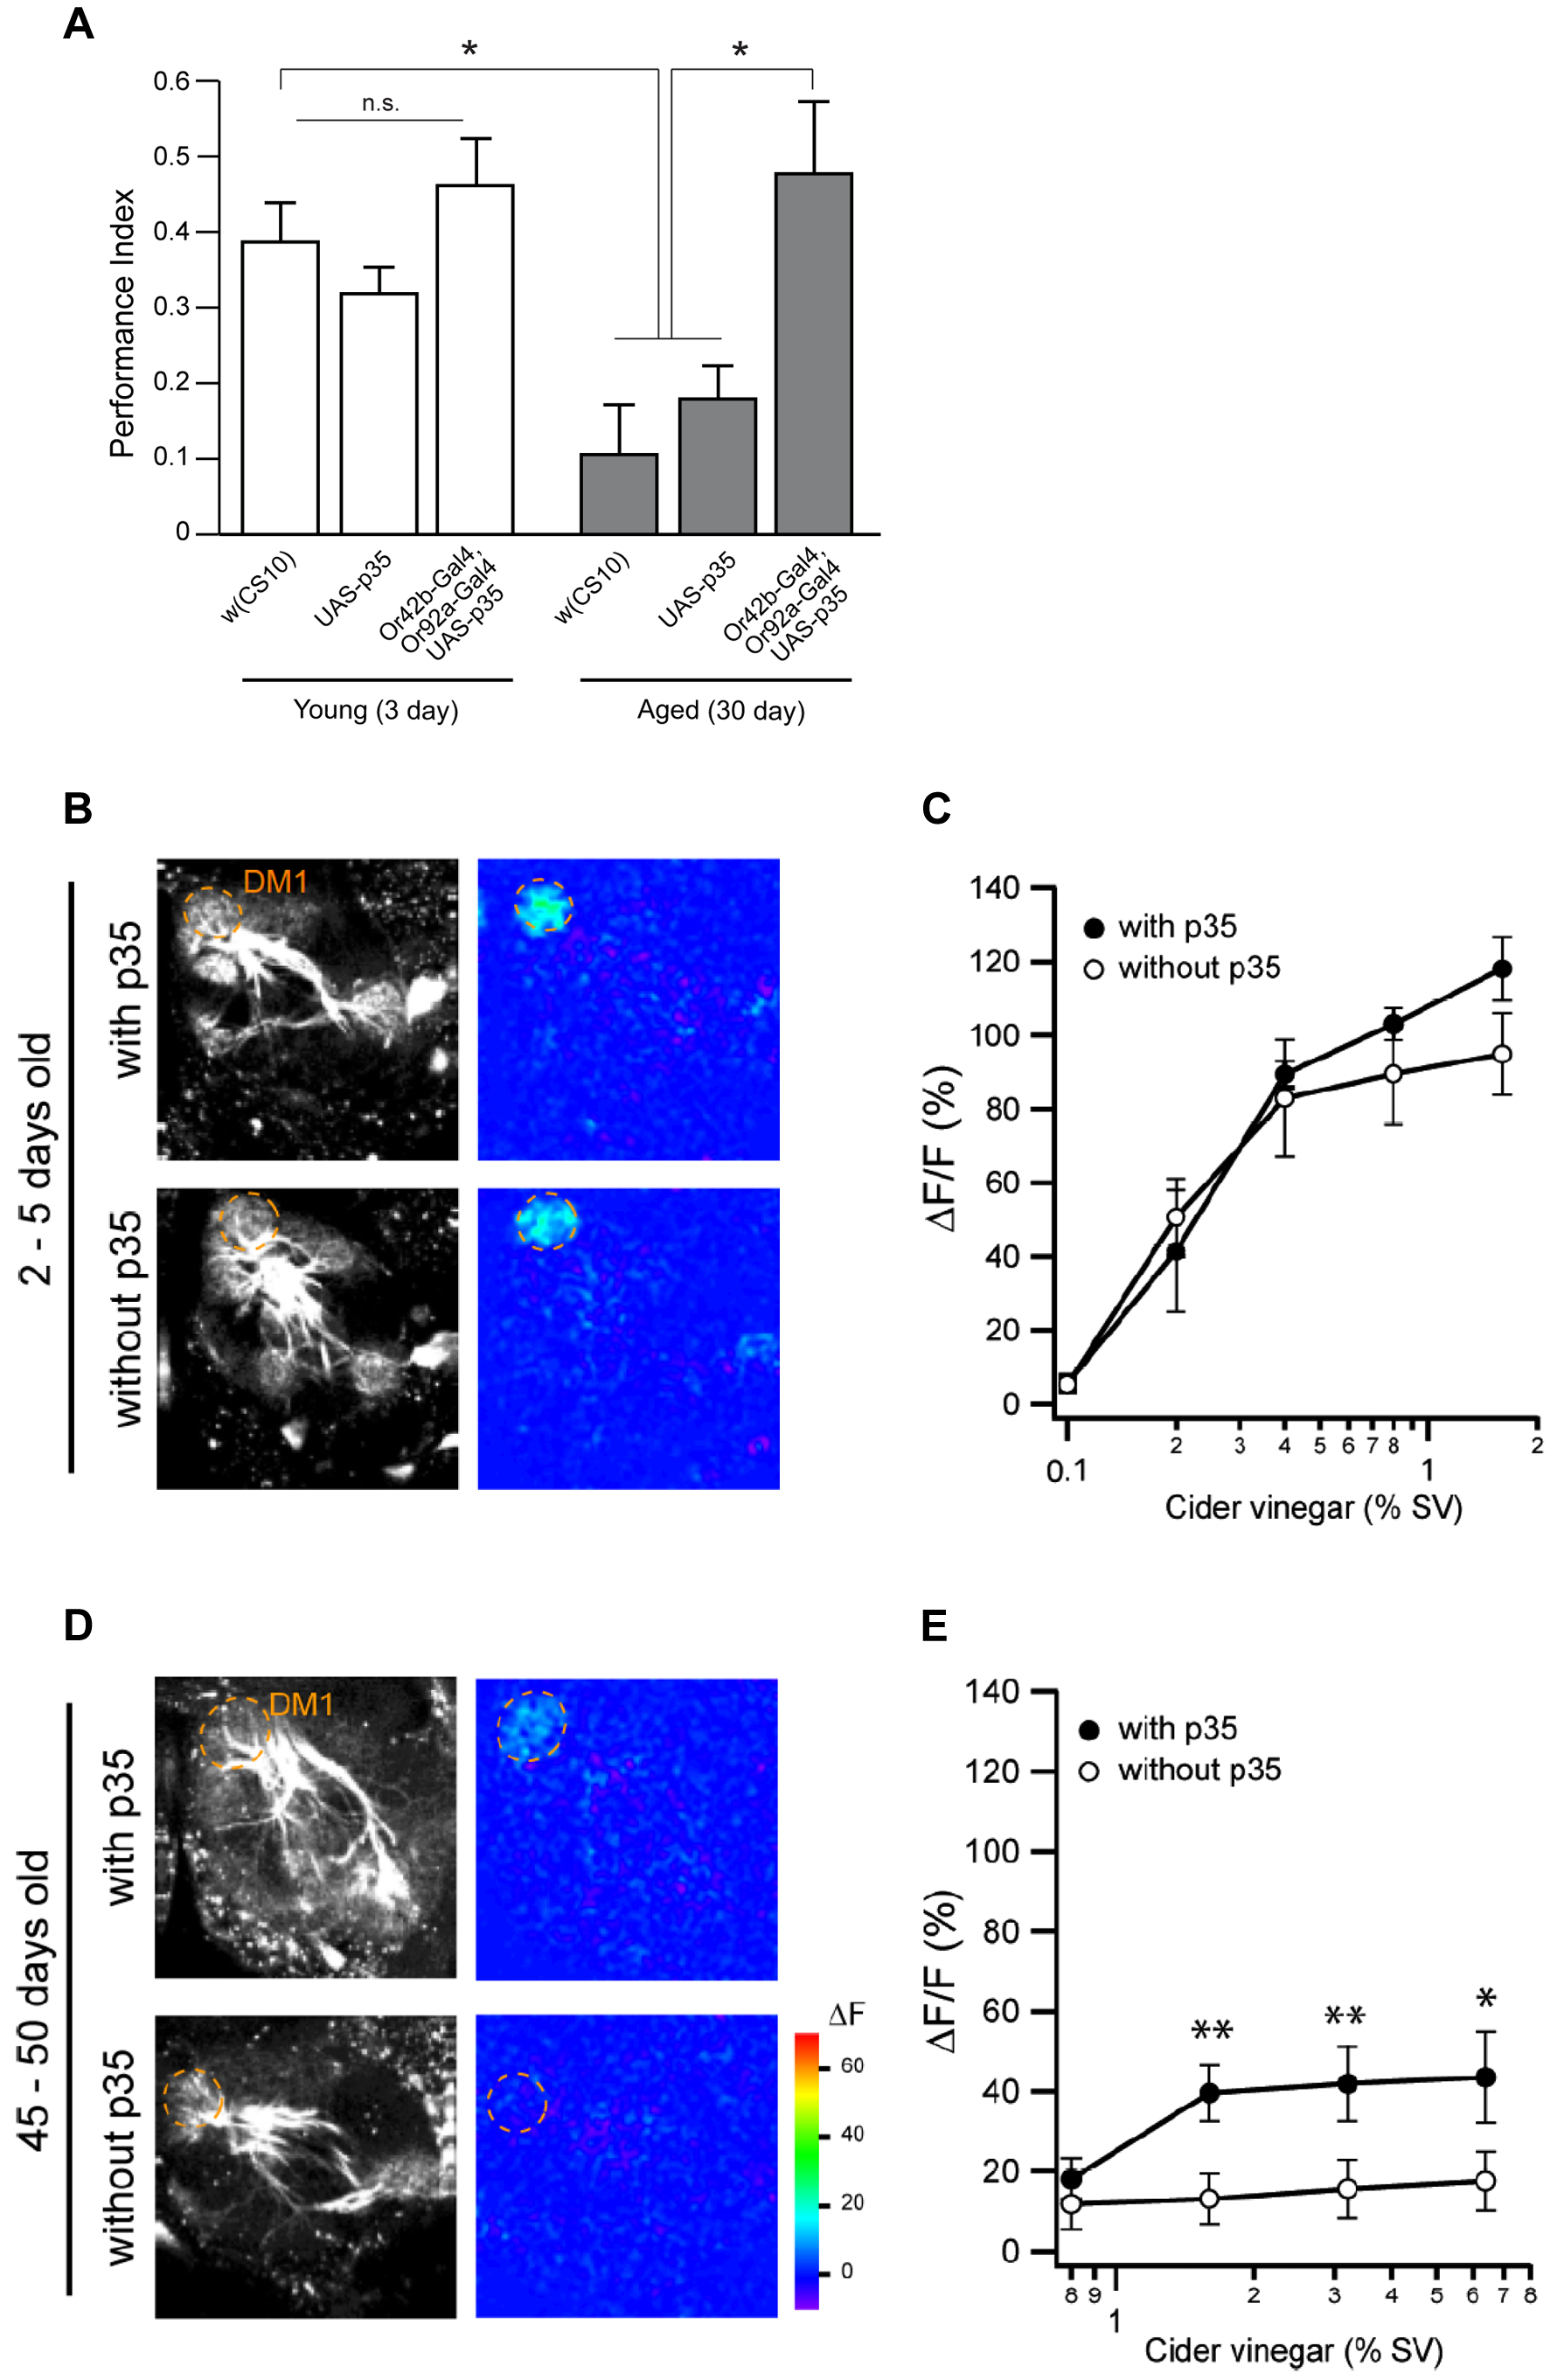 Age-related impairments of attraction behavior and neural transmission are restored by caspase inhibition in corresponding ORNs.